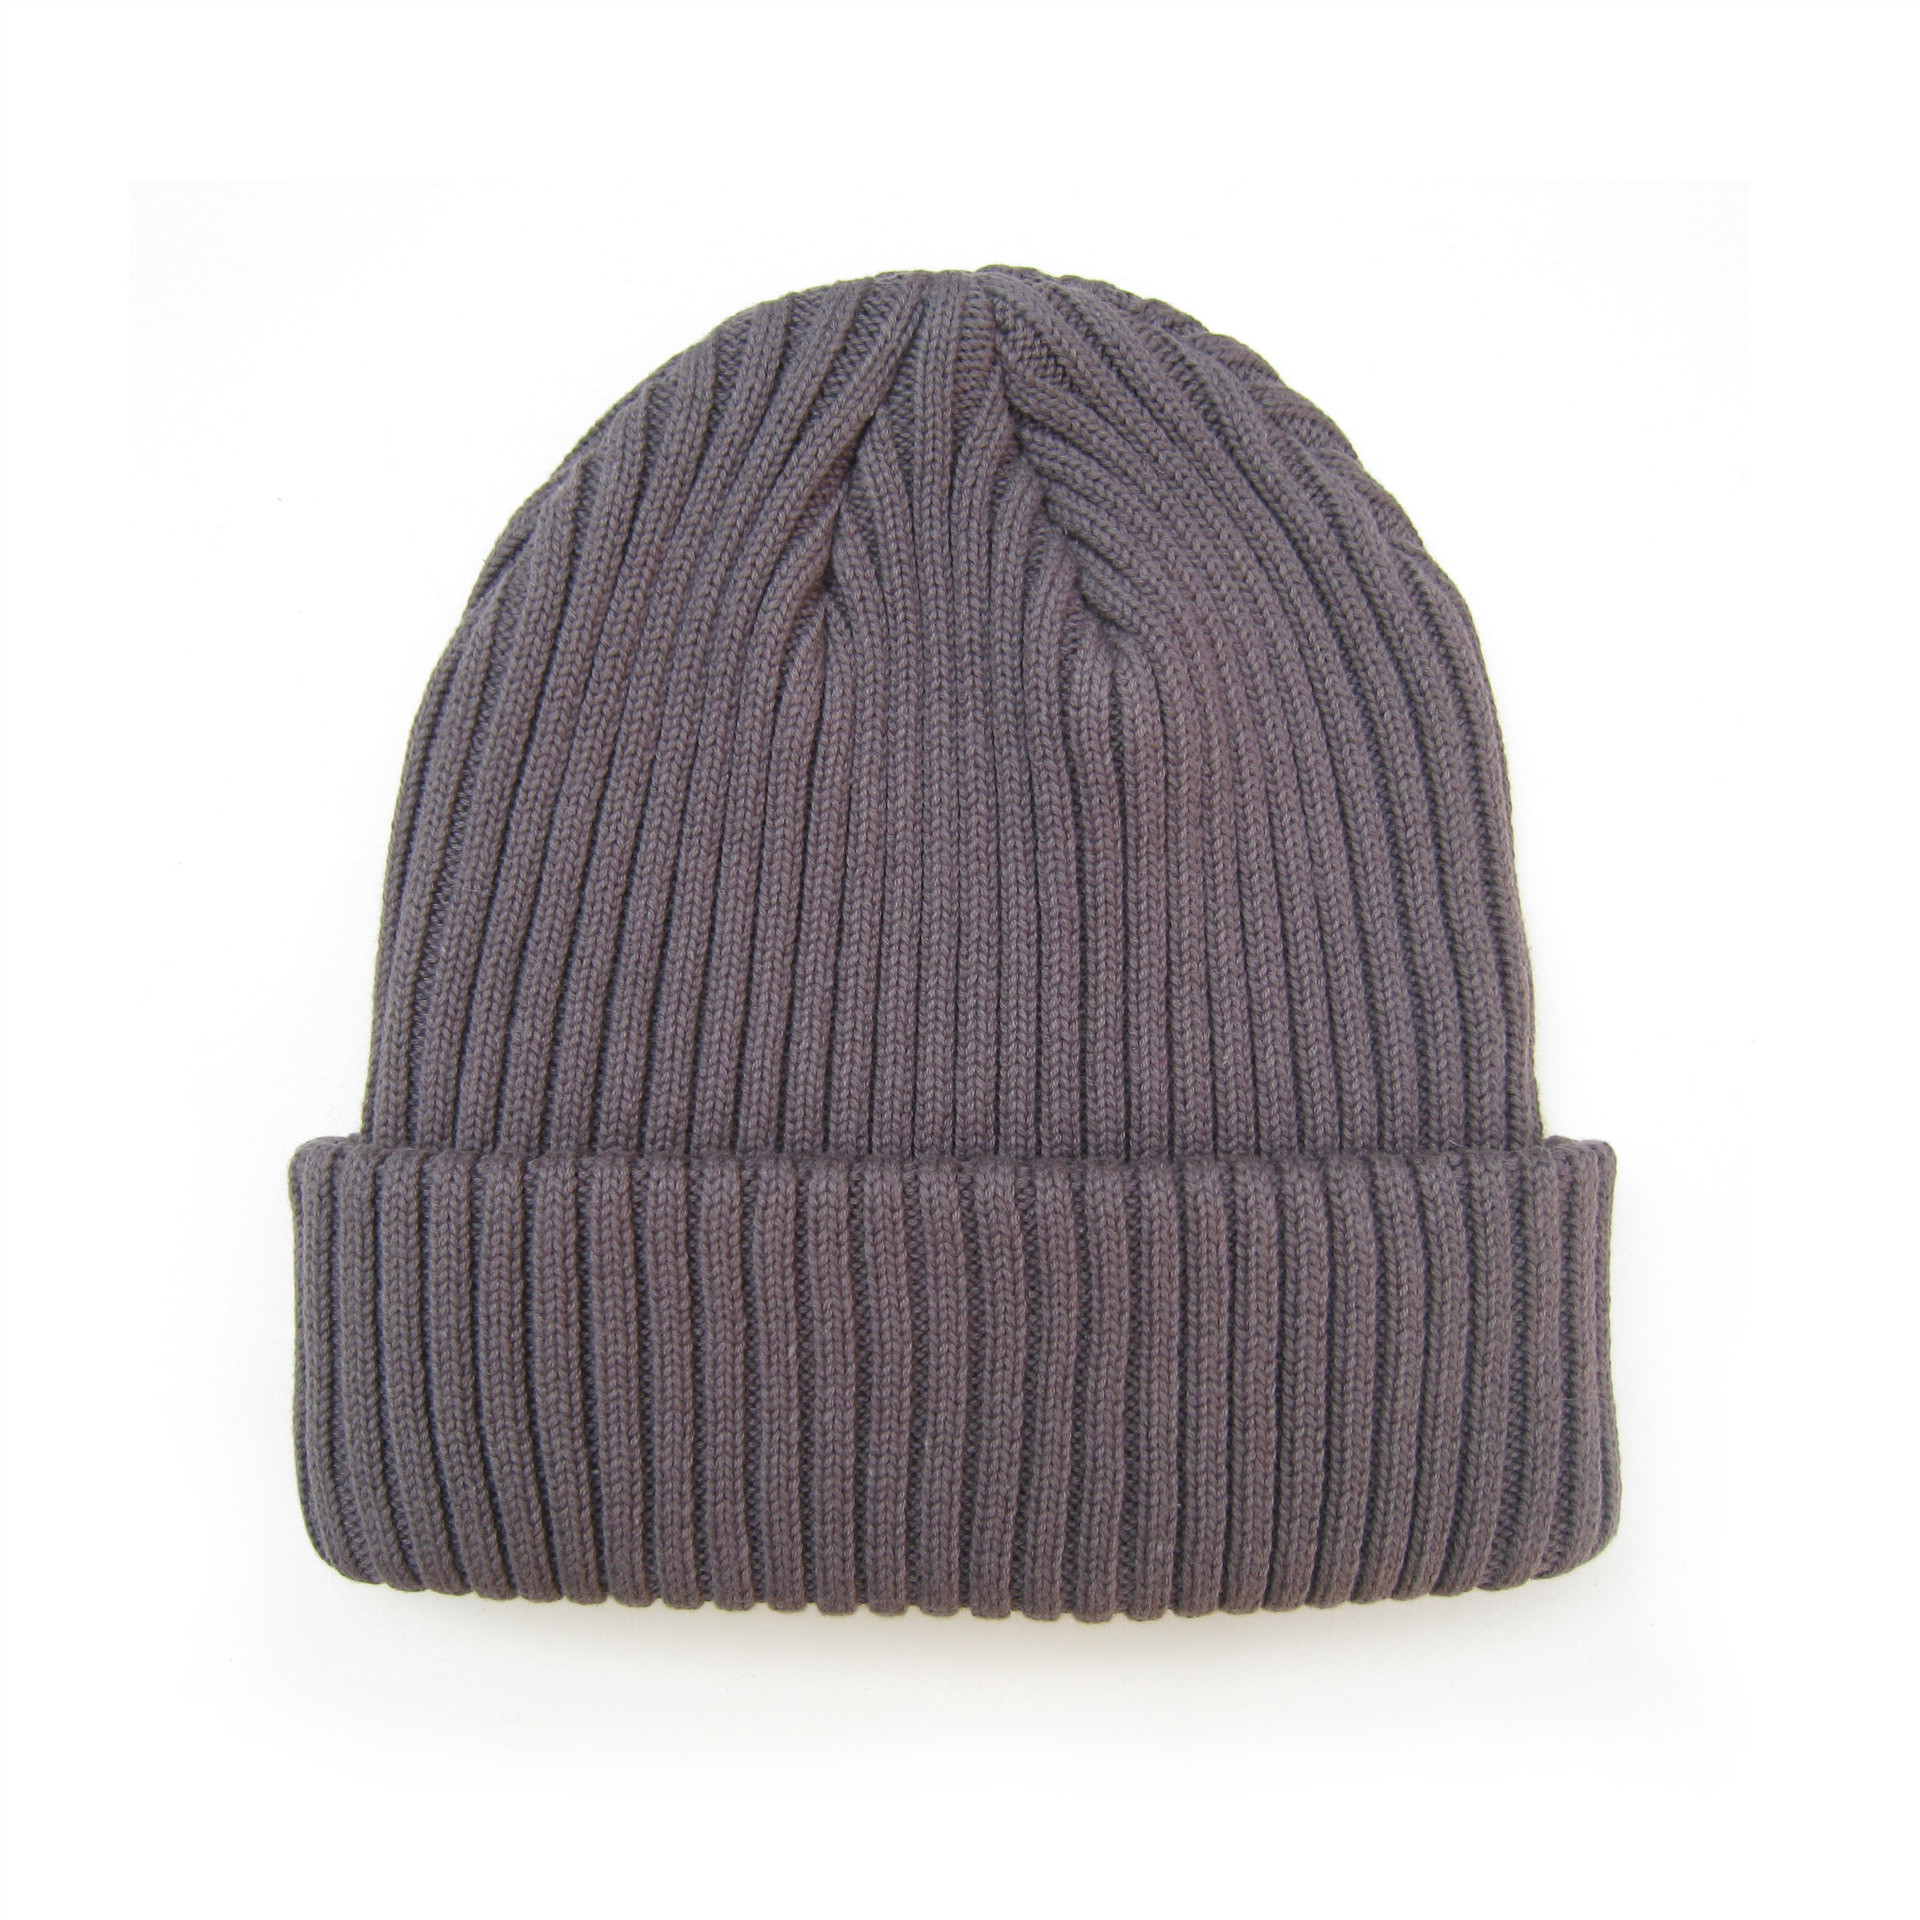 7258ac570a3 Custom thick beanie cap winter knitted hat for women and baby ...